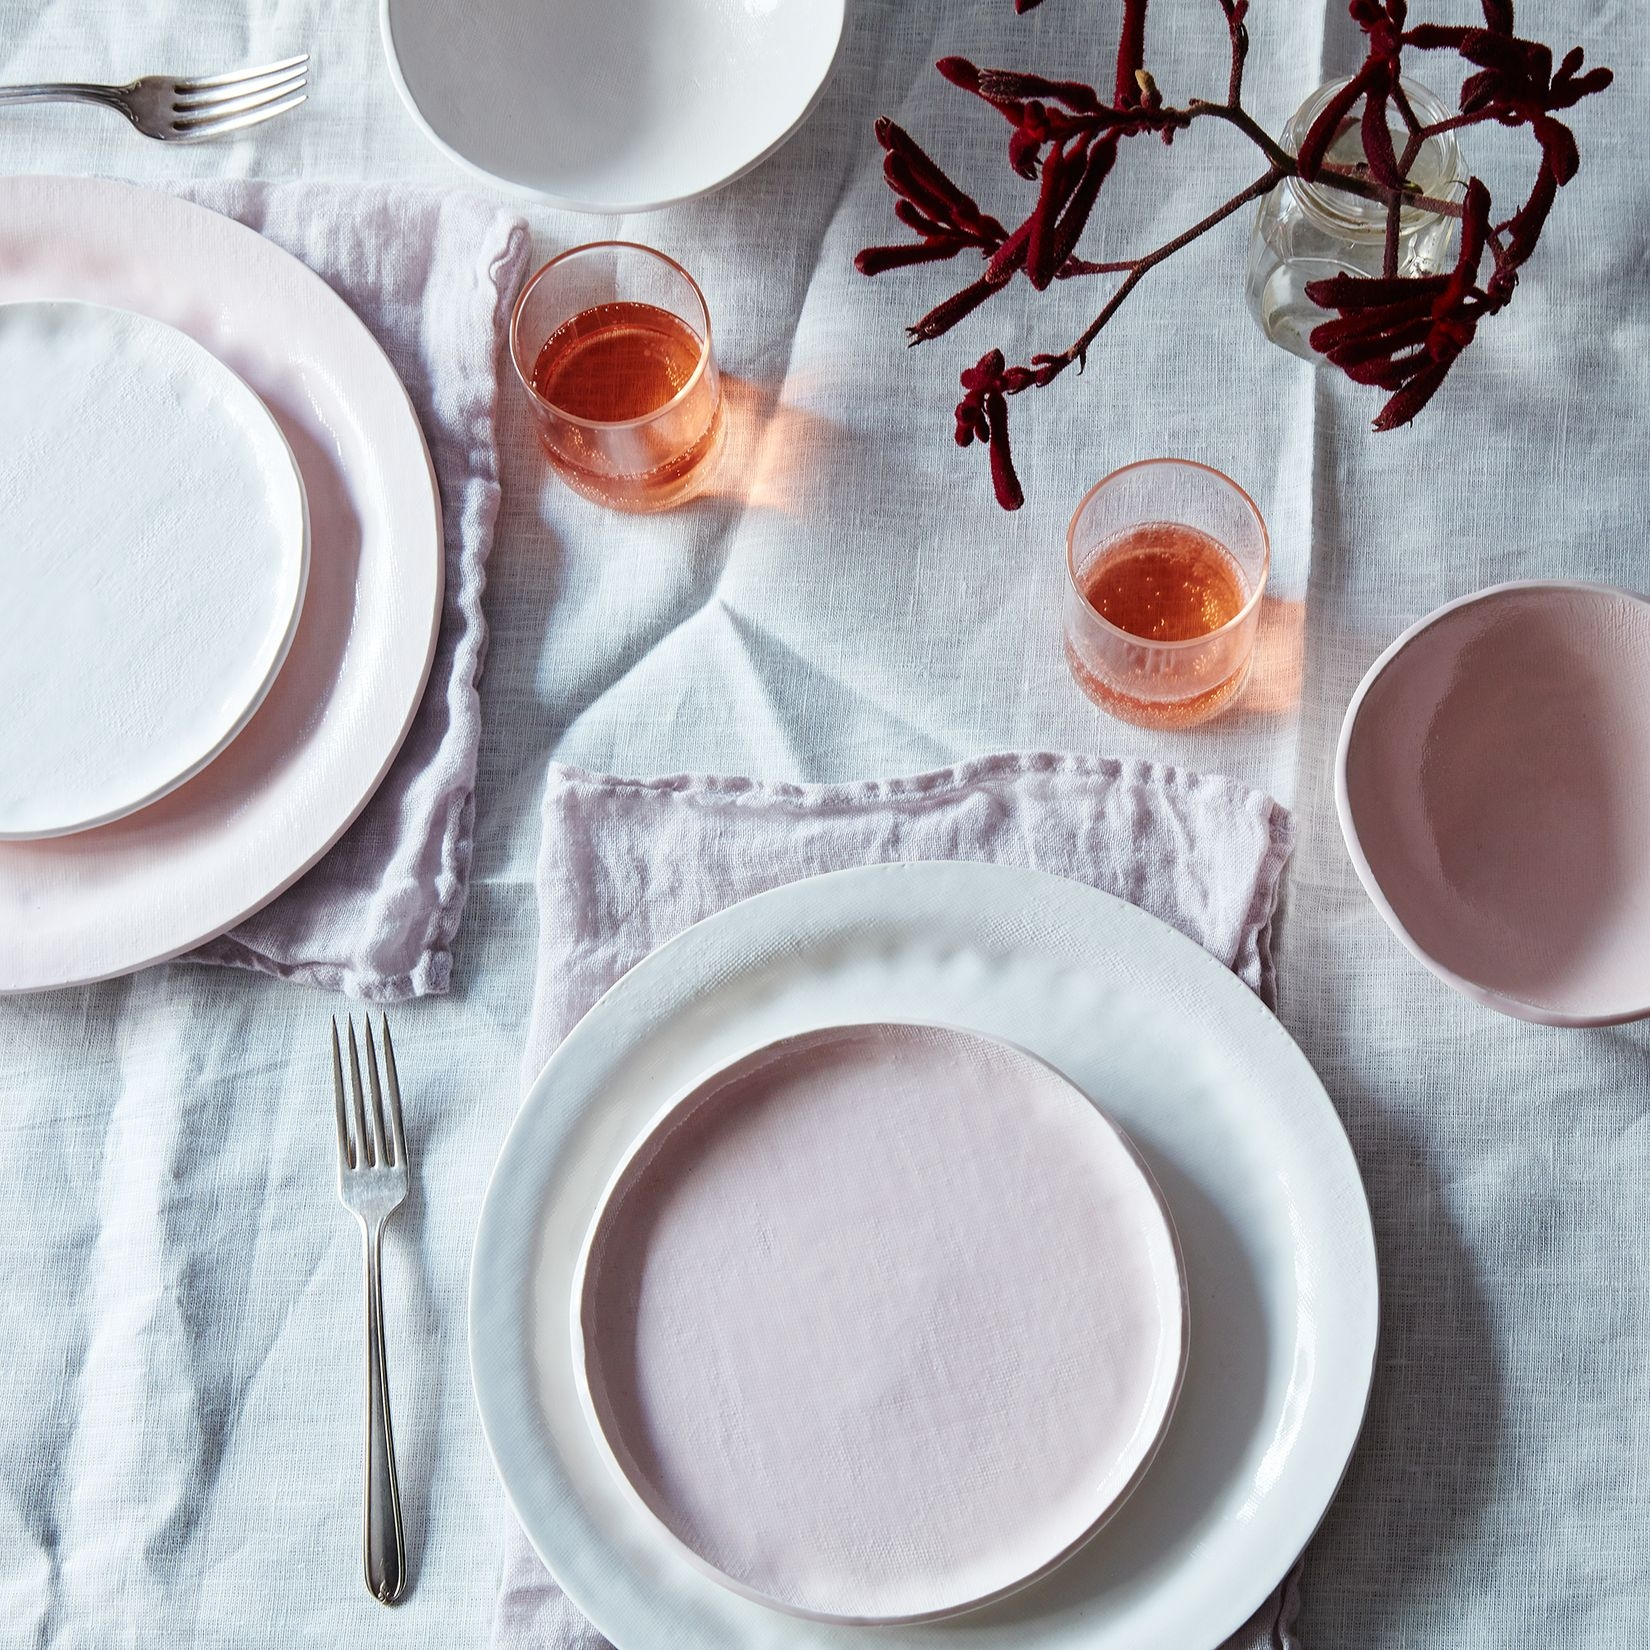 Think Kitchen Dish Setsfood52 pink textured porcelain dinnerware set looks like white